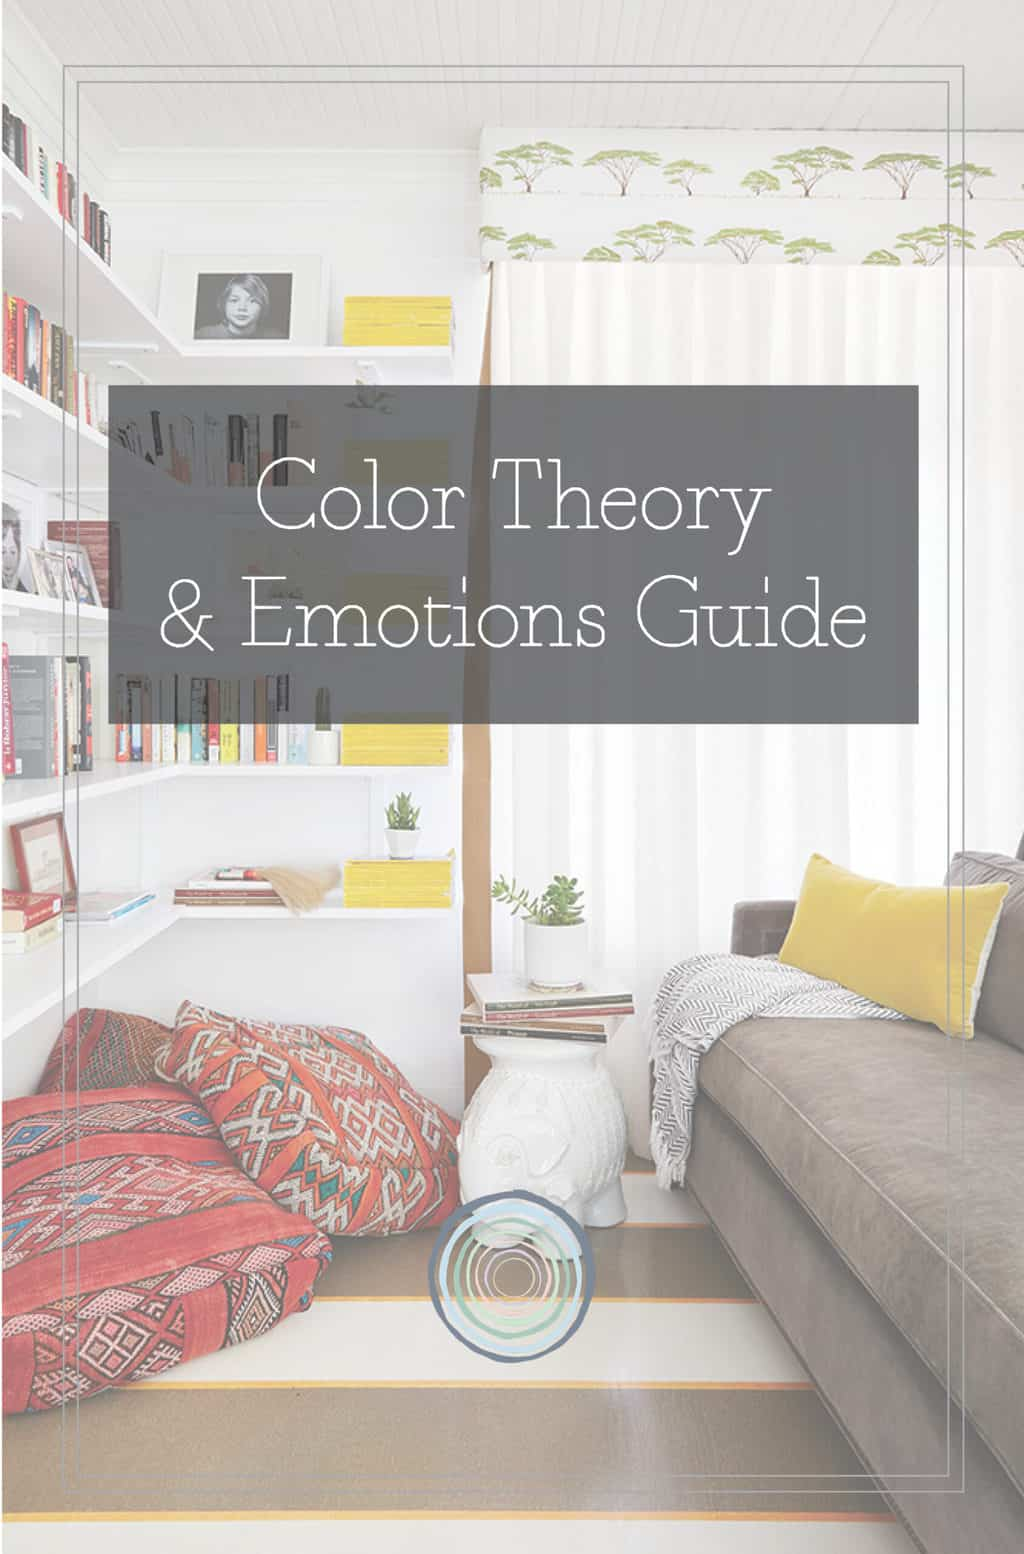 Color Theory and Emotions Guide PDF